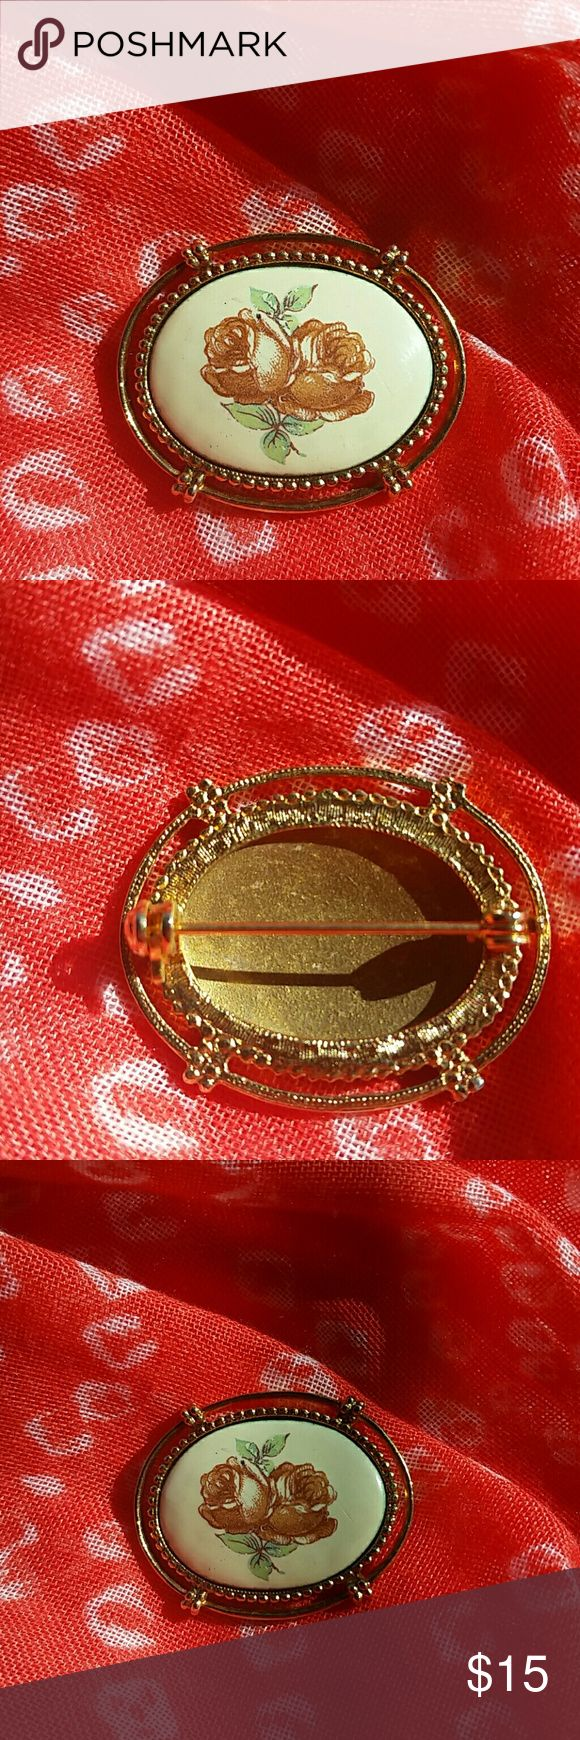 Vintage Oval Picture Frame Brooch Pretty pin brooch. Looks like an antique oval picture frame. Gold tone with cream colored background and double roses center. Vintage Jewelry Brooches